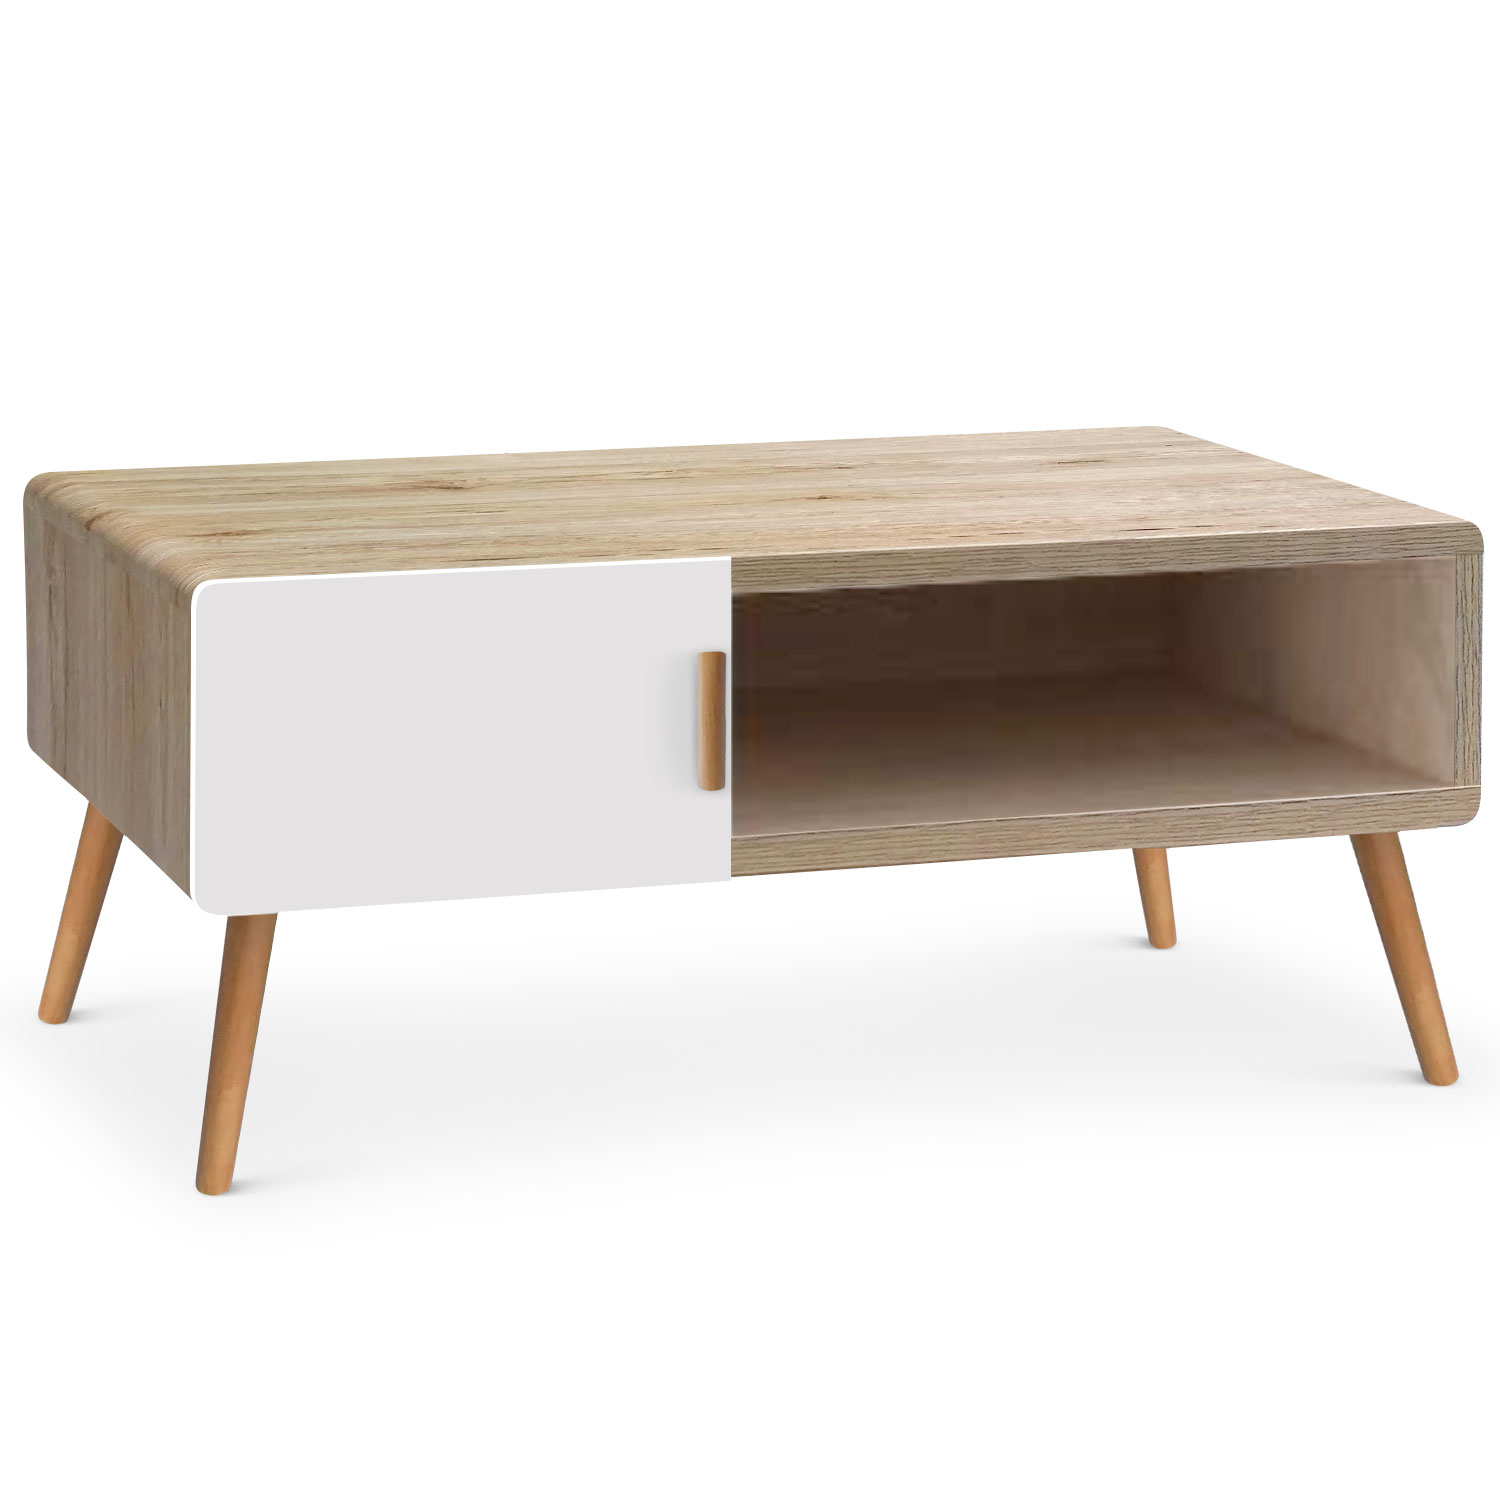 126 table basse pas chere design table basse table basse for Kendra table basse